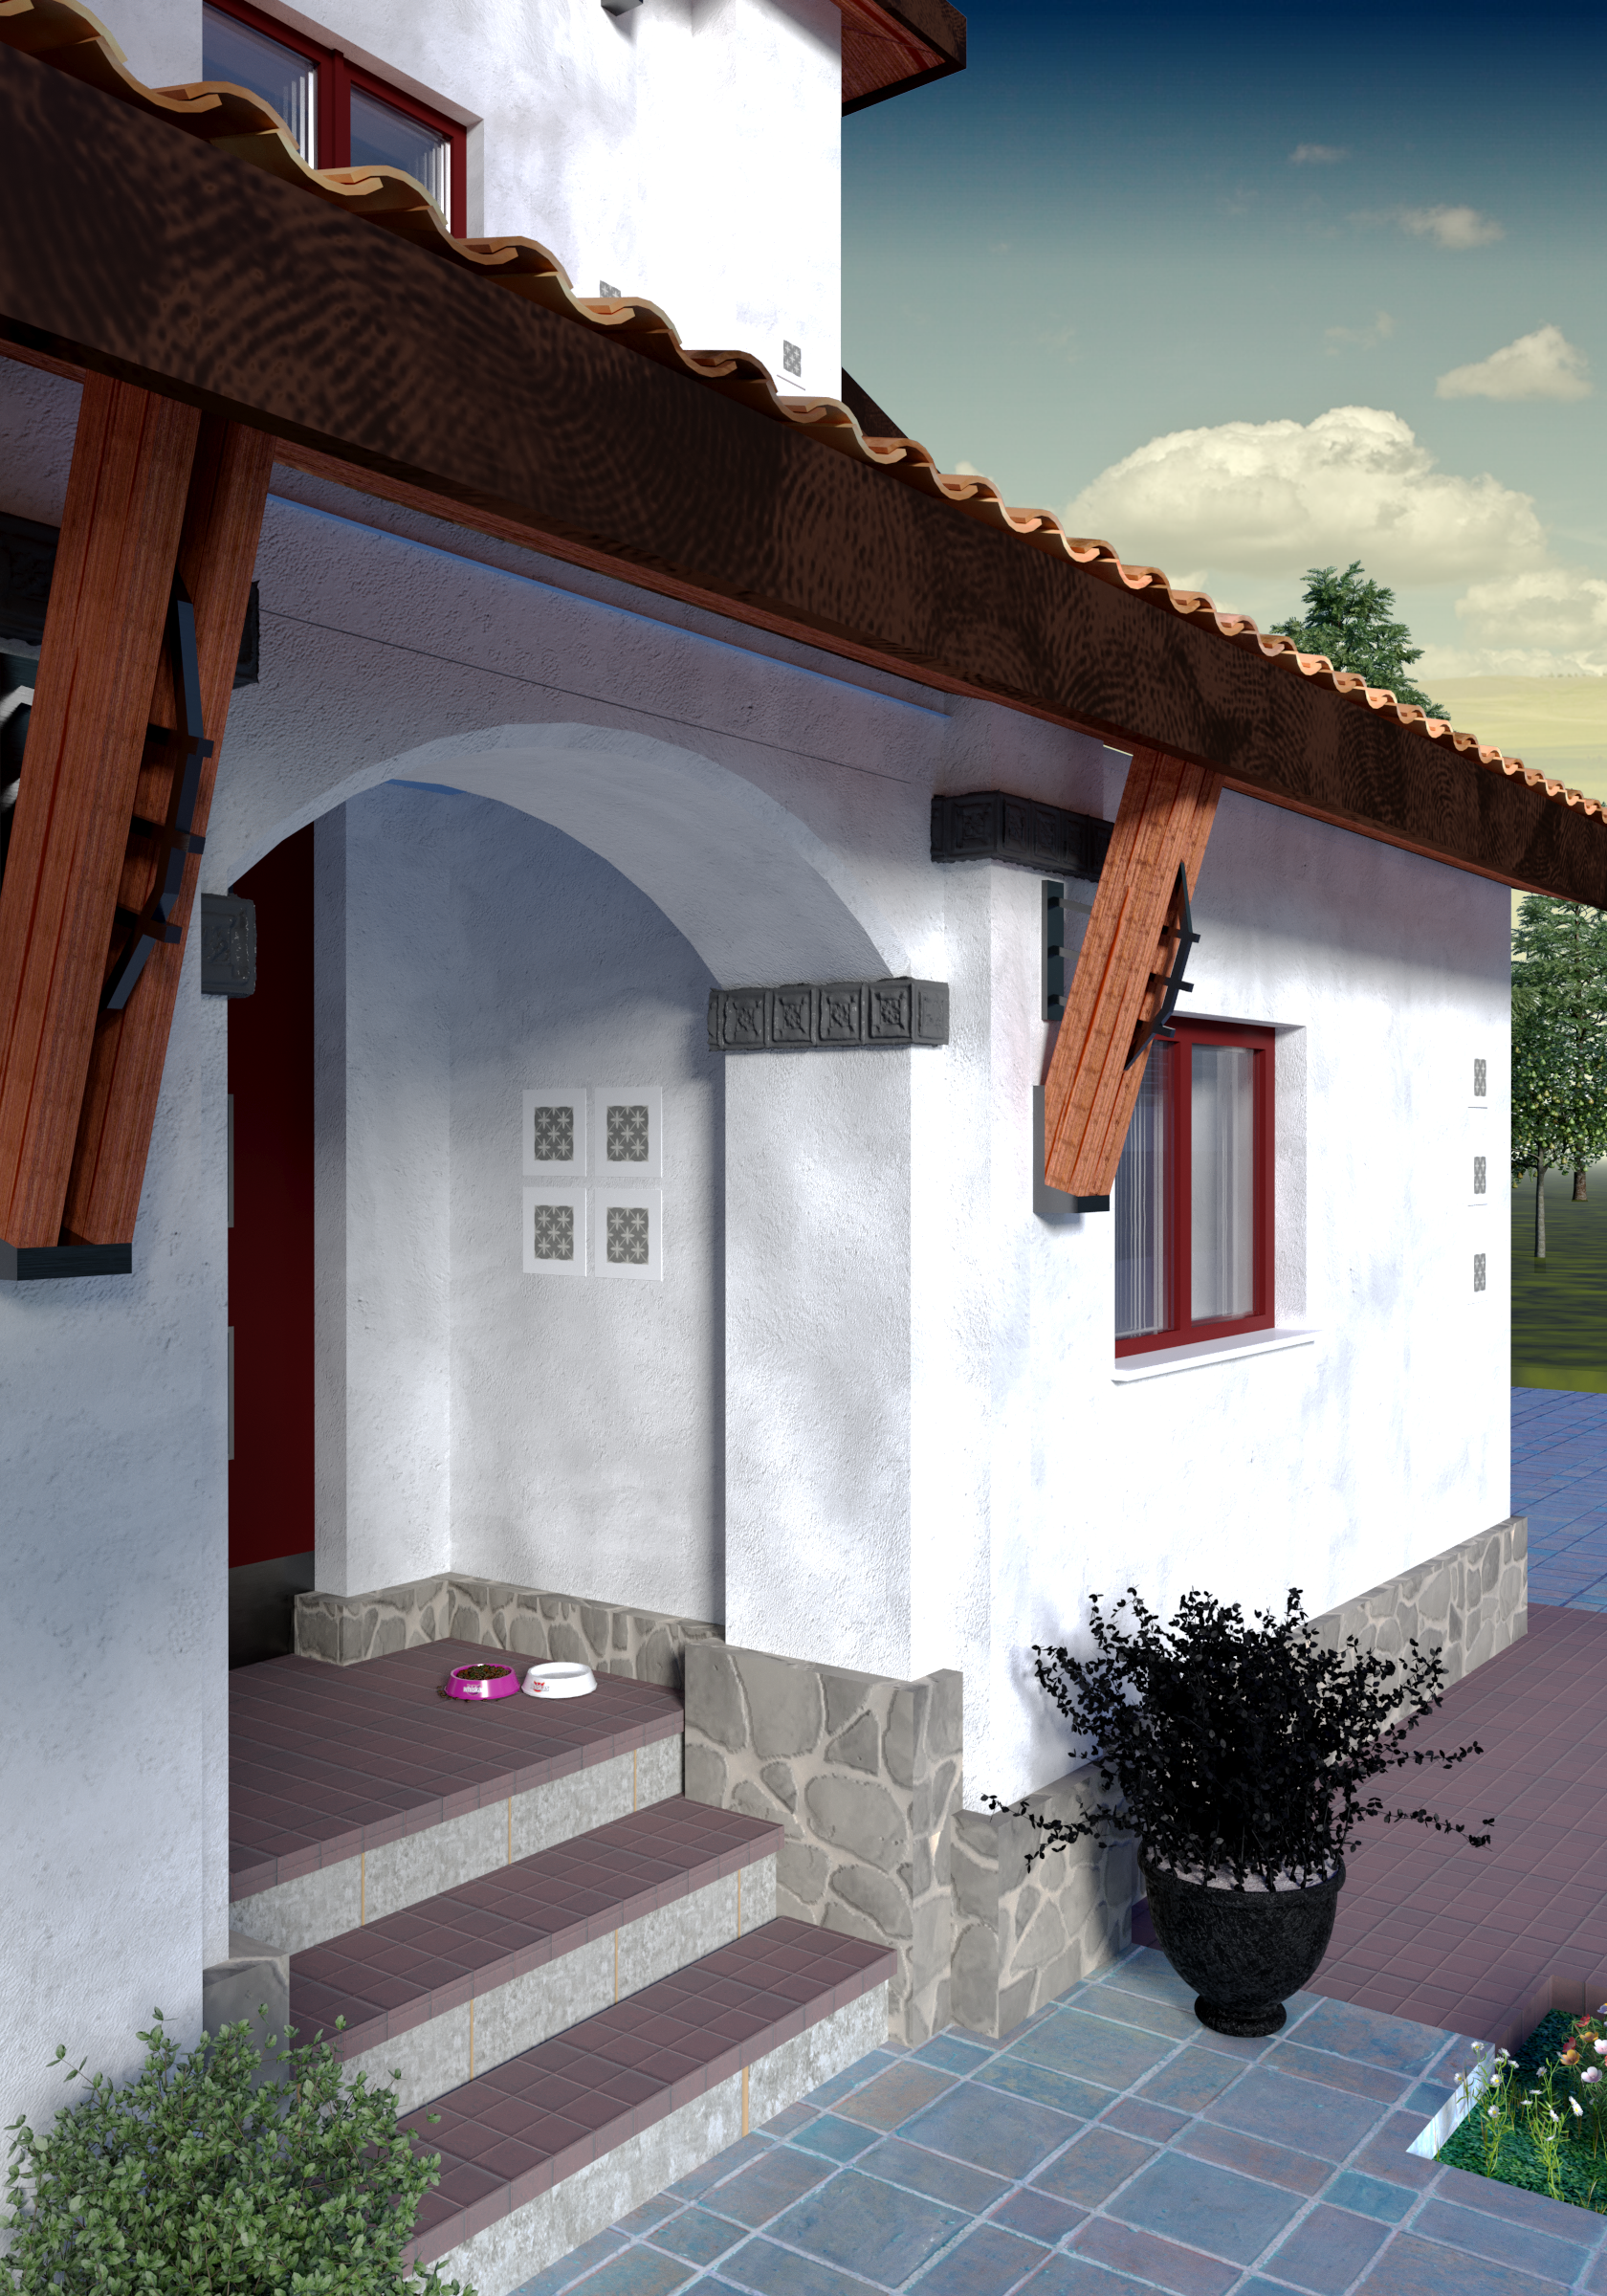 Mediterranean style house project with terraces with panoramic windows, view 4